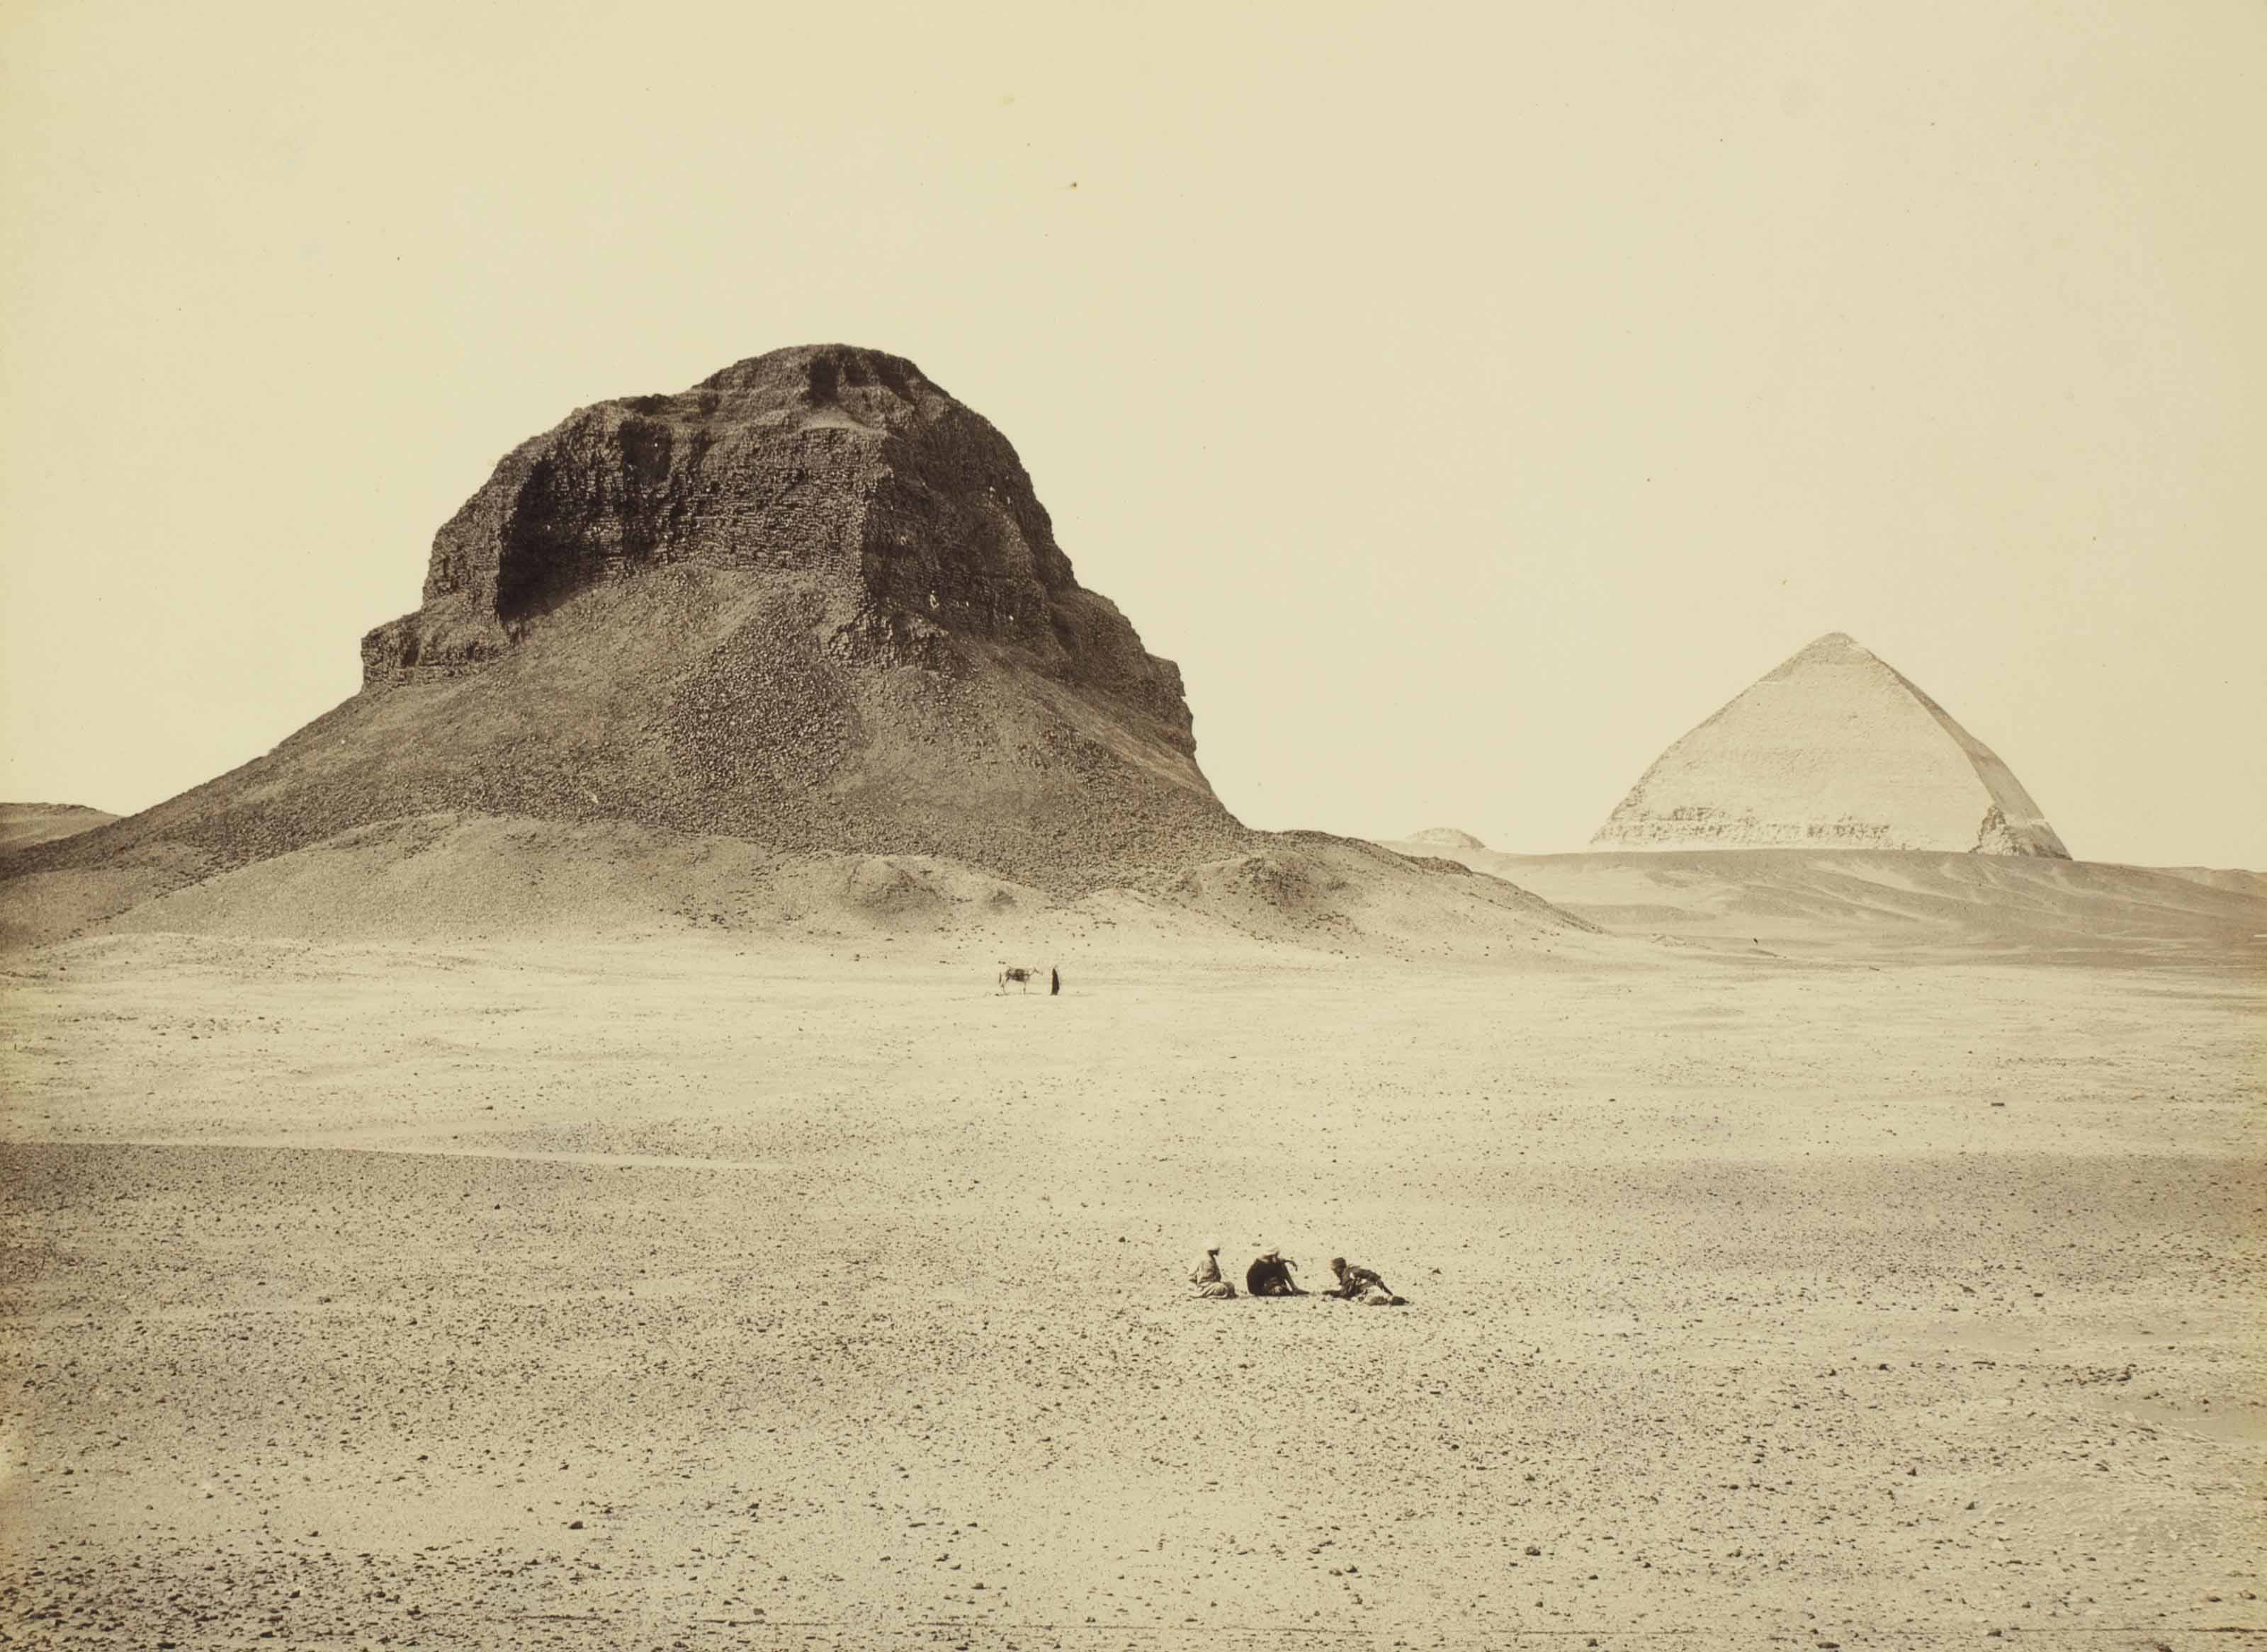 The Pyramids of Dahshur, from the East, 1858